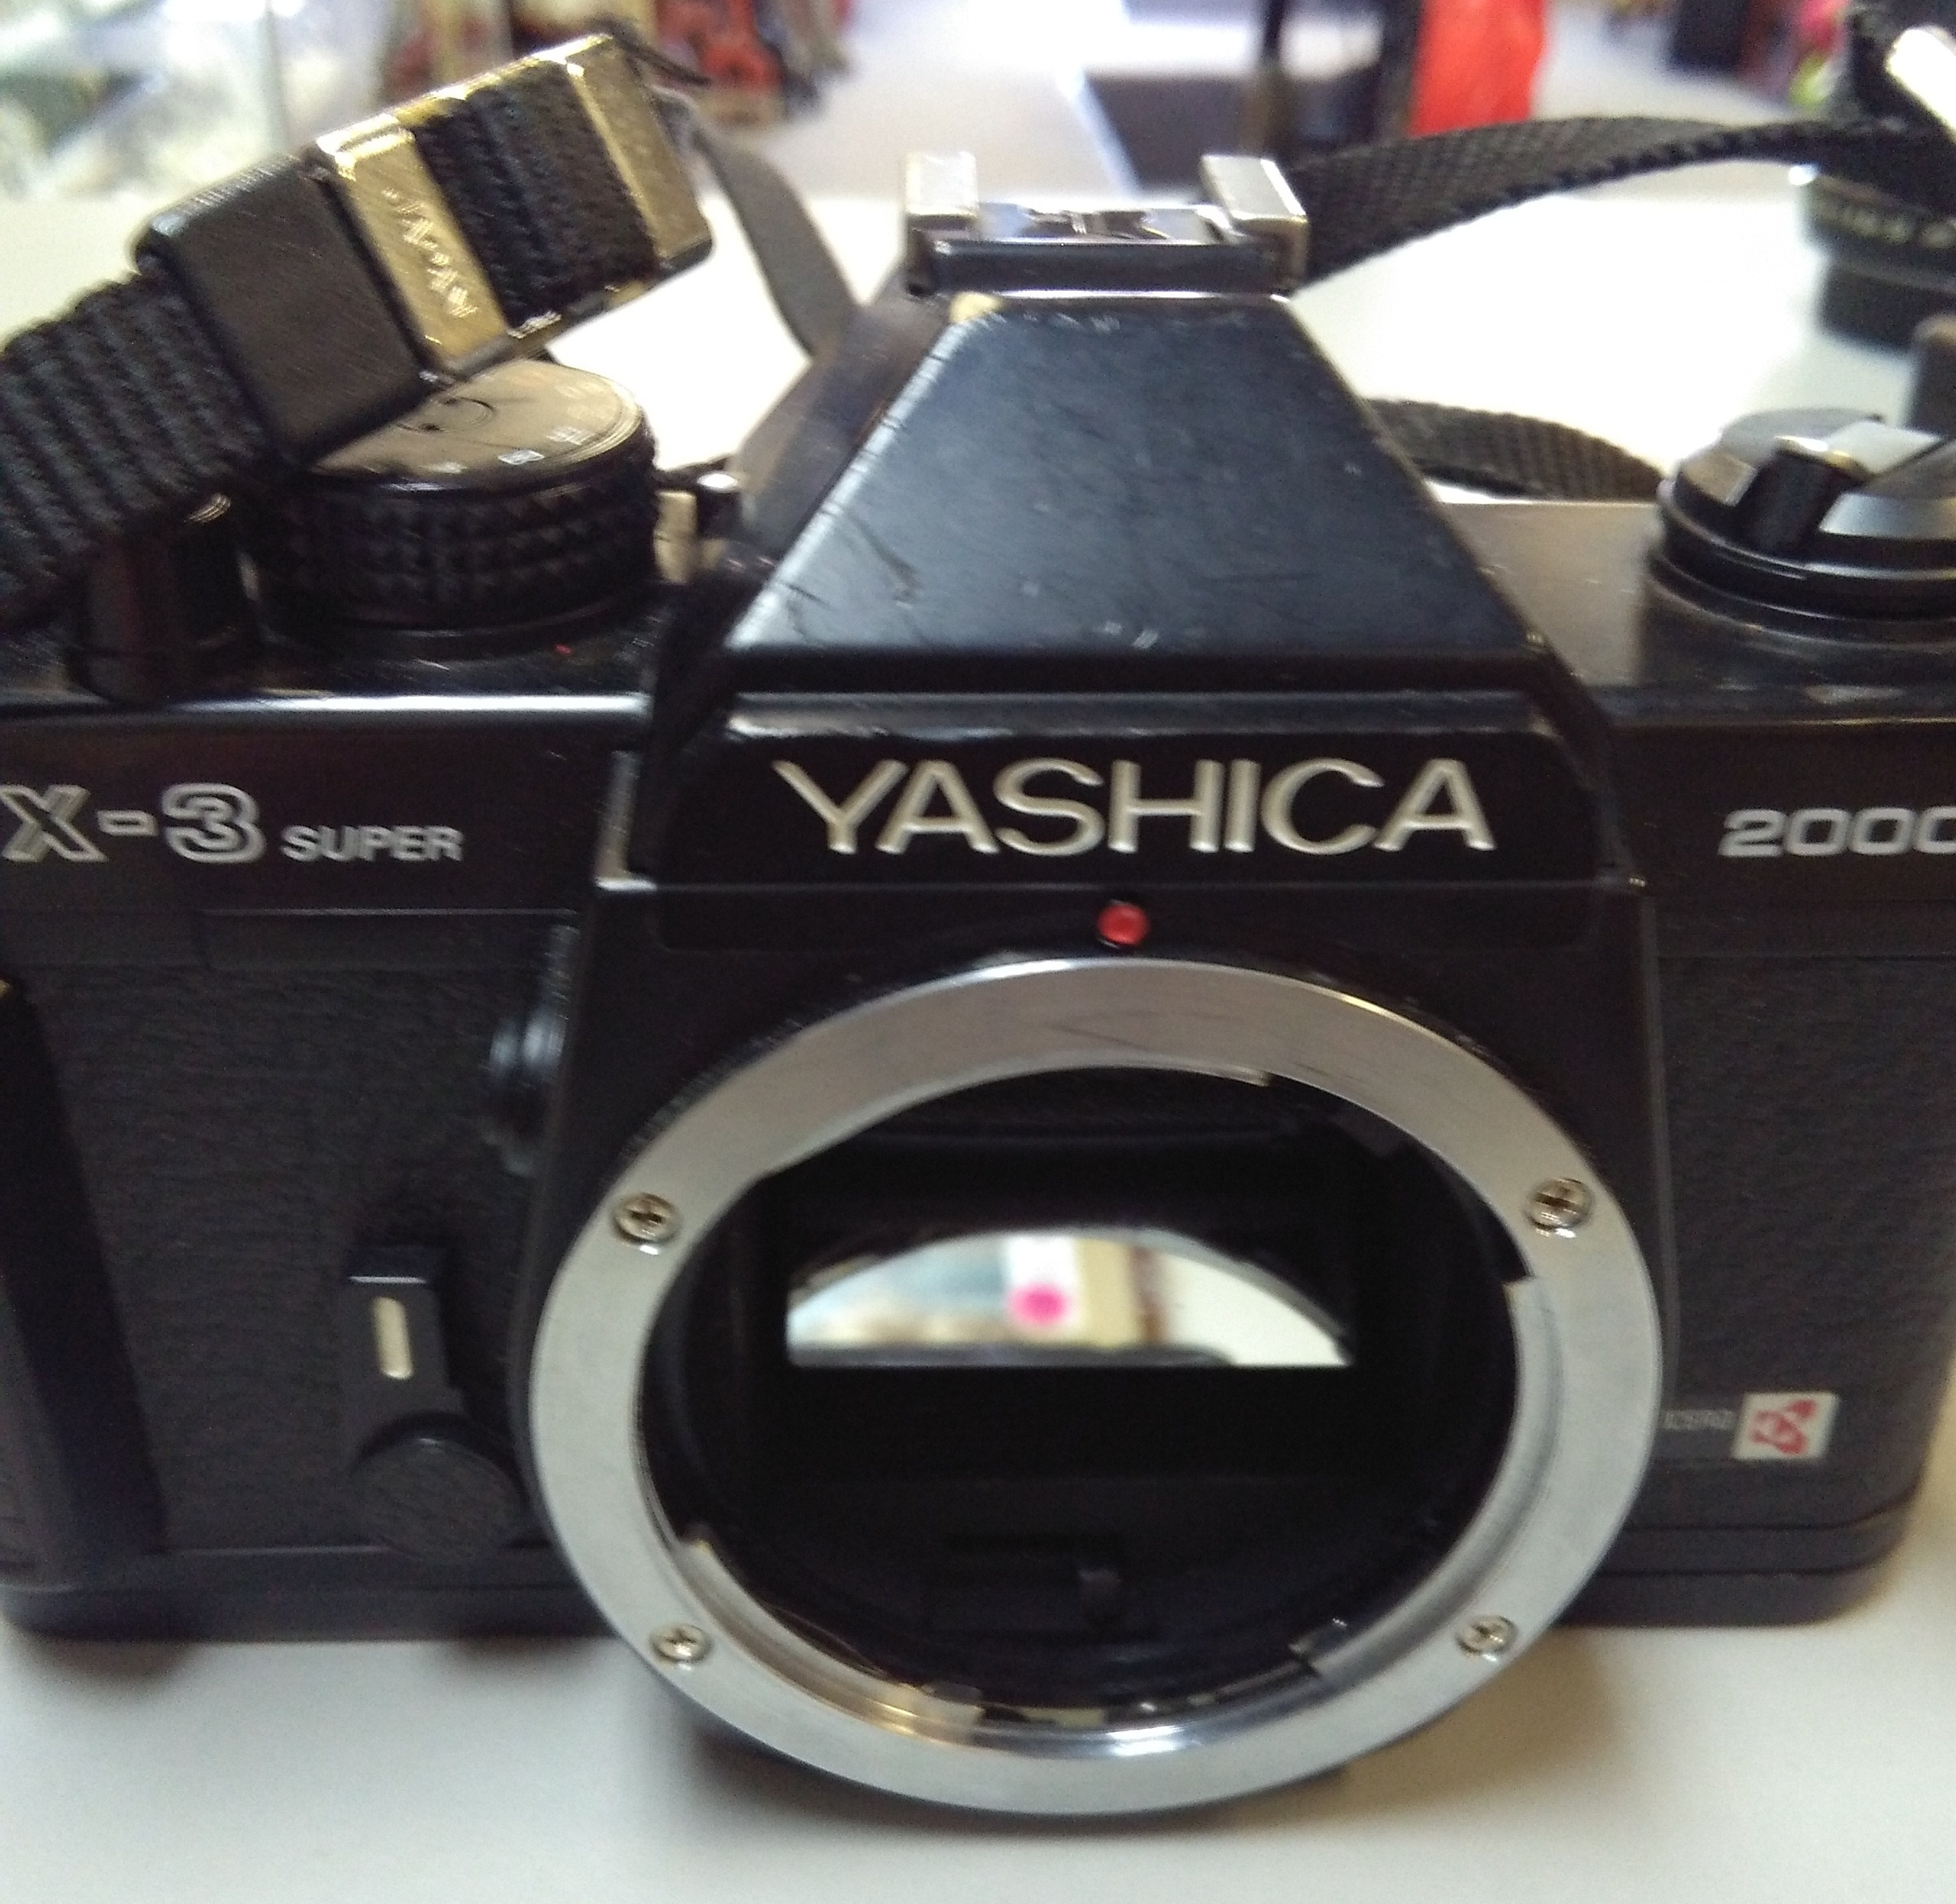 YASHICA FX-3 SUPER 2000 CAMERA BODY